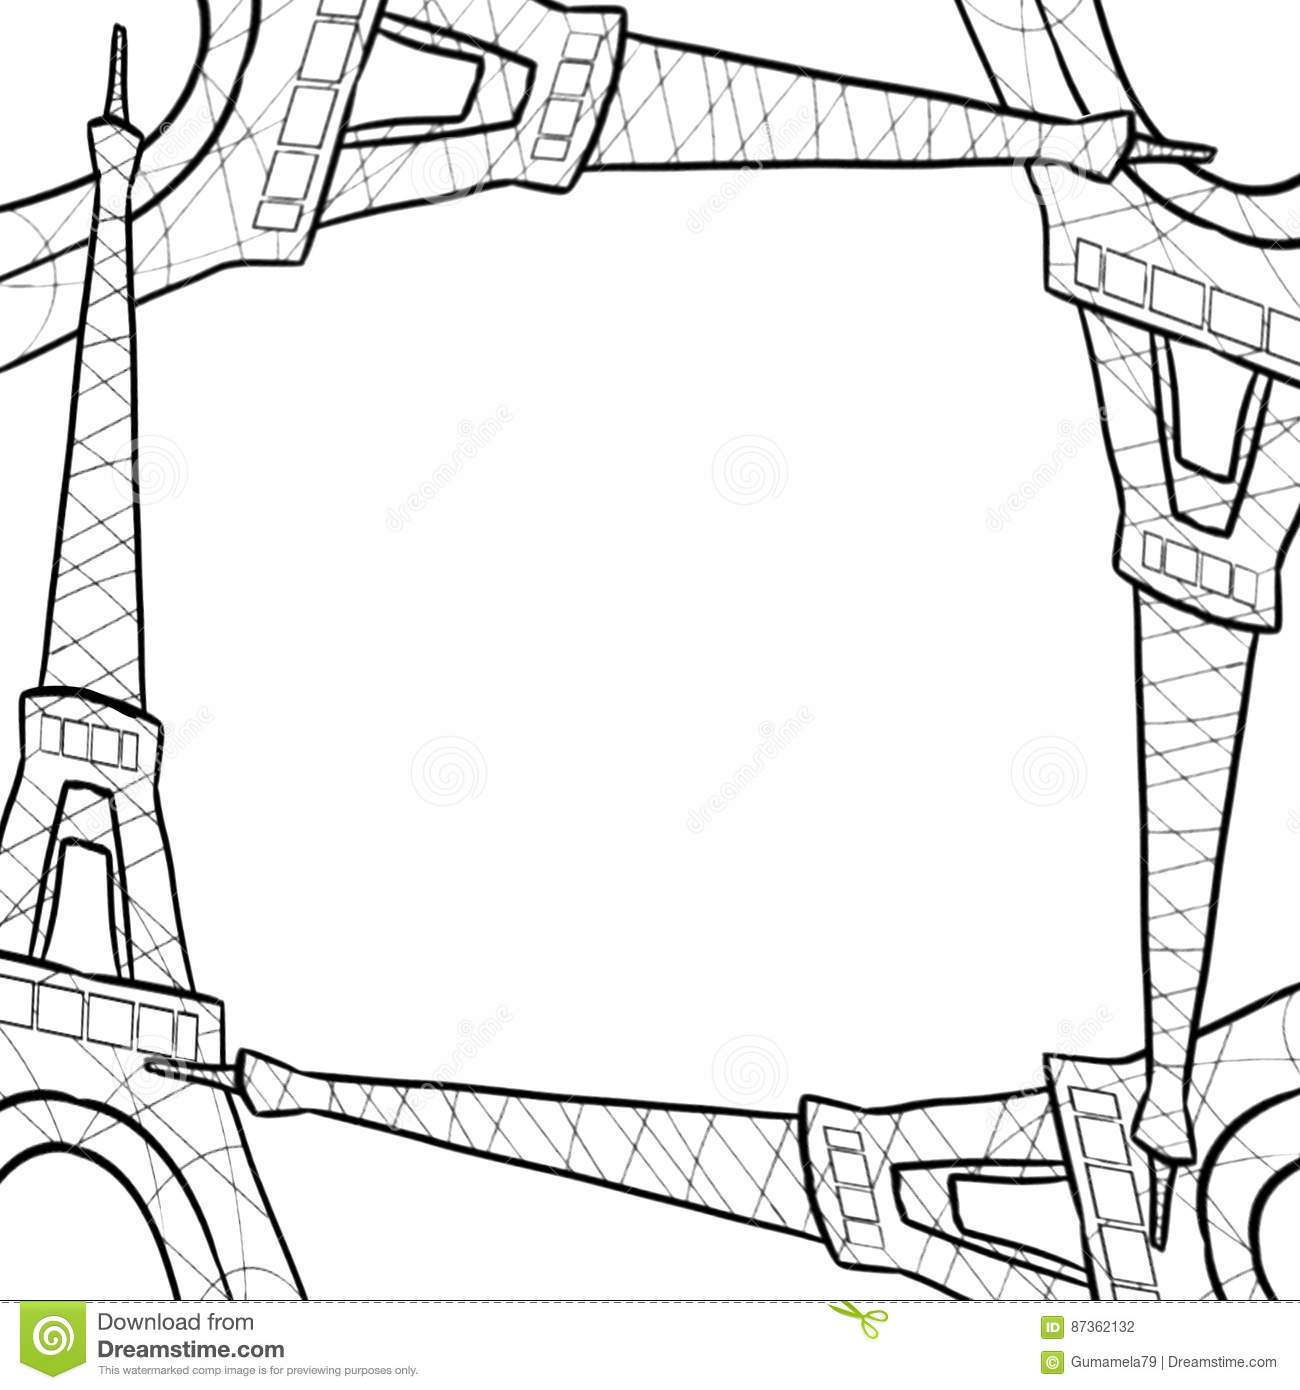 hand drawn sketch of eiffel tower border frame stock photography